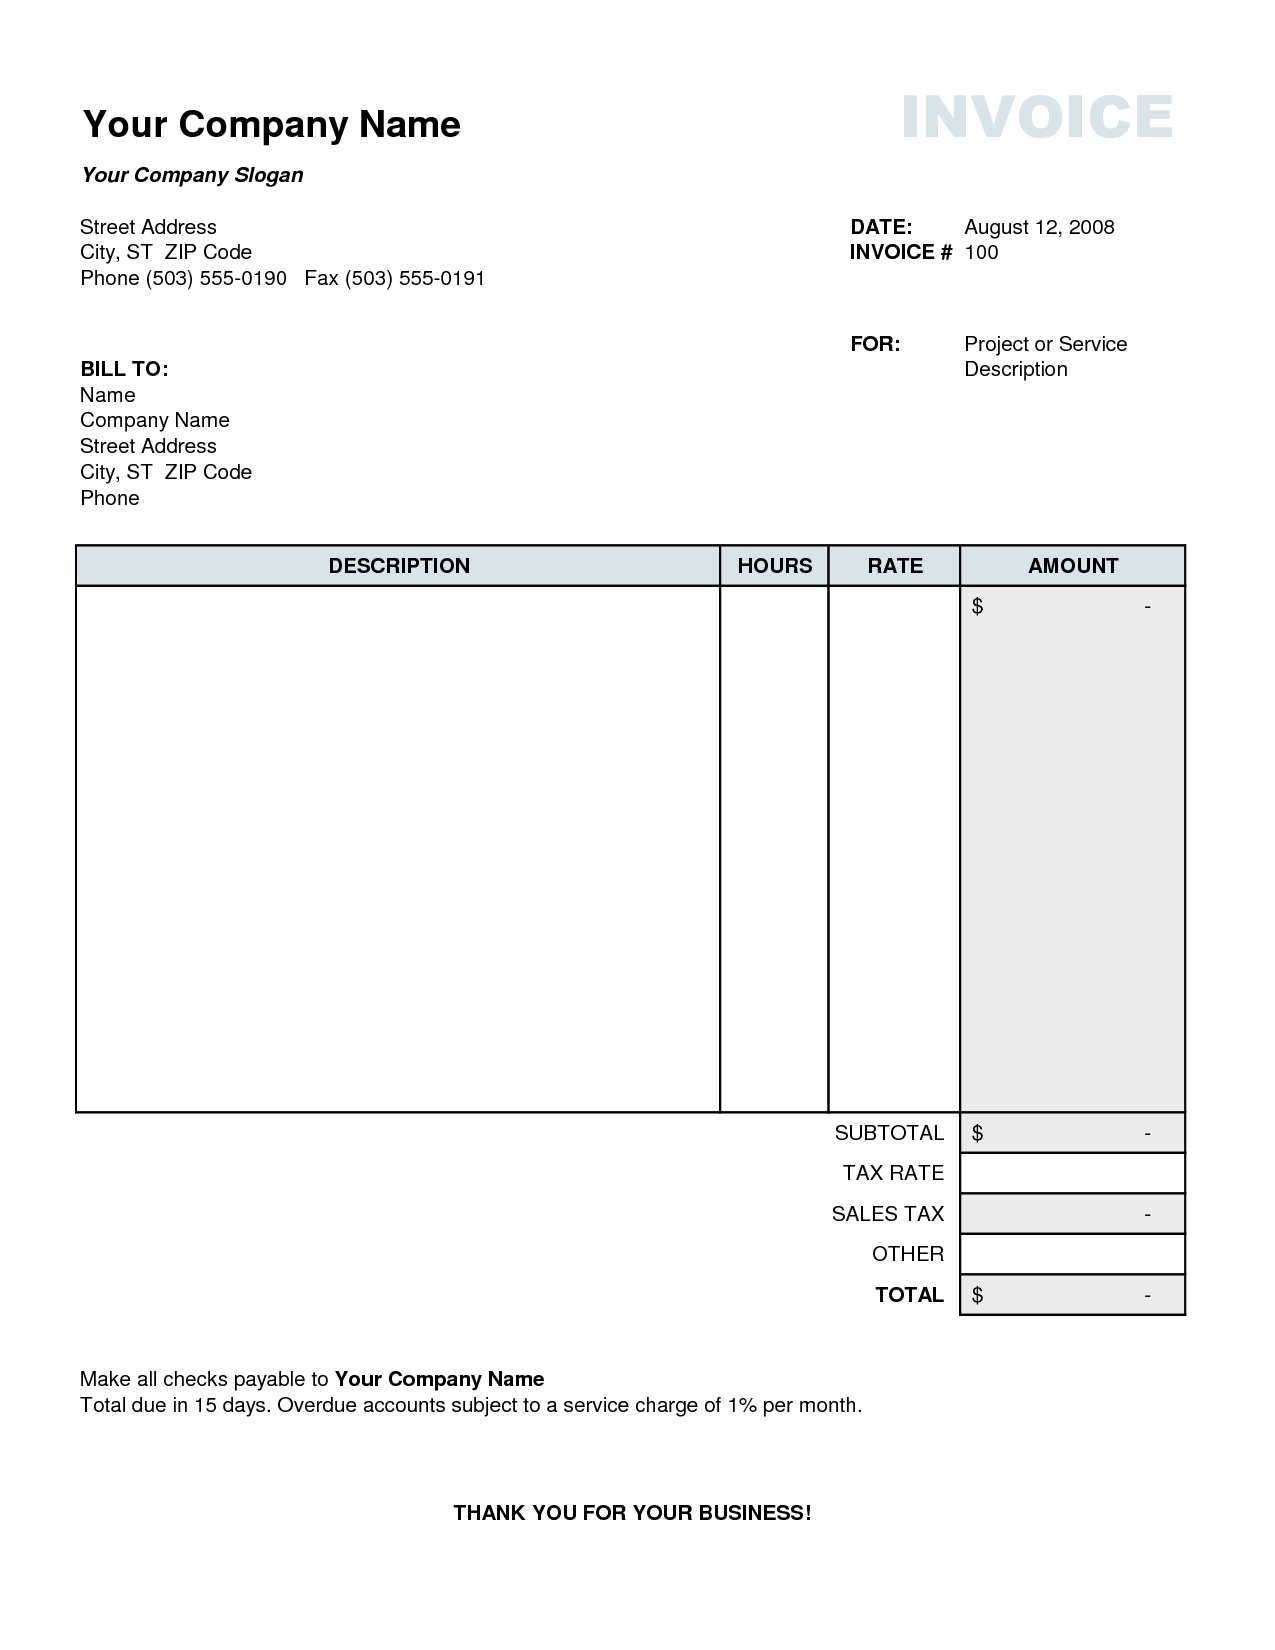 free tax invoice template excel invoice example tax invoice excel template